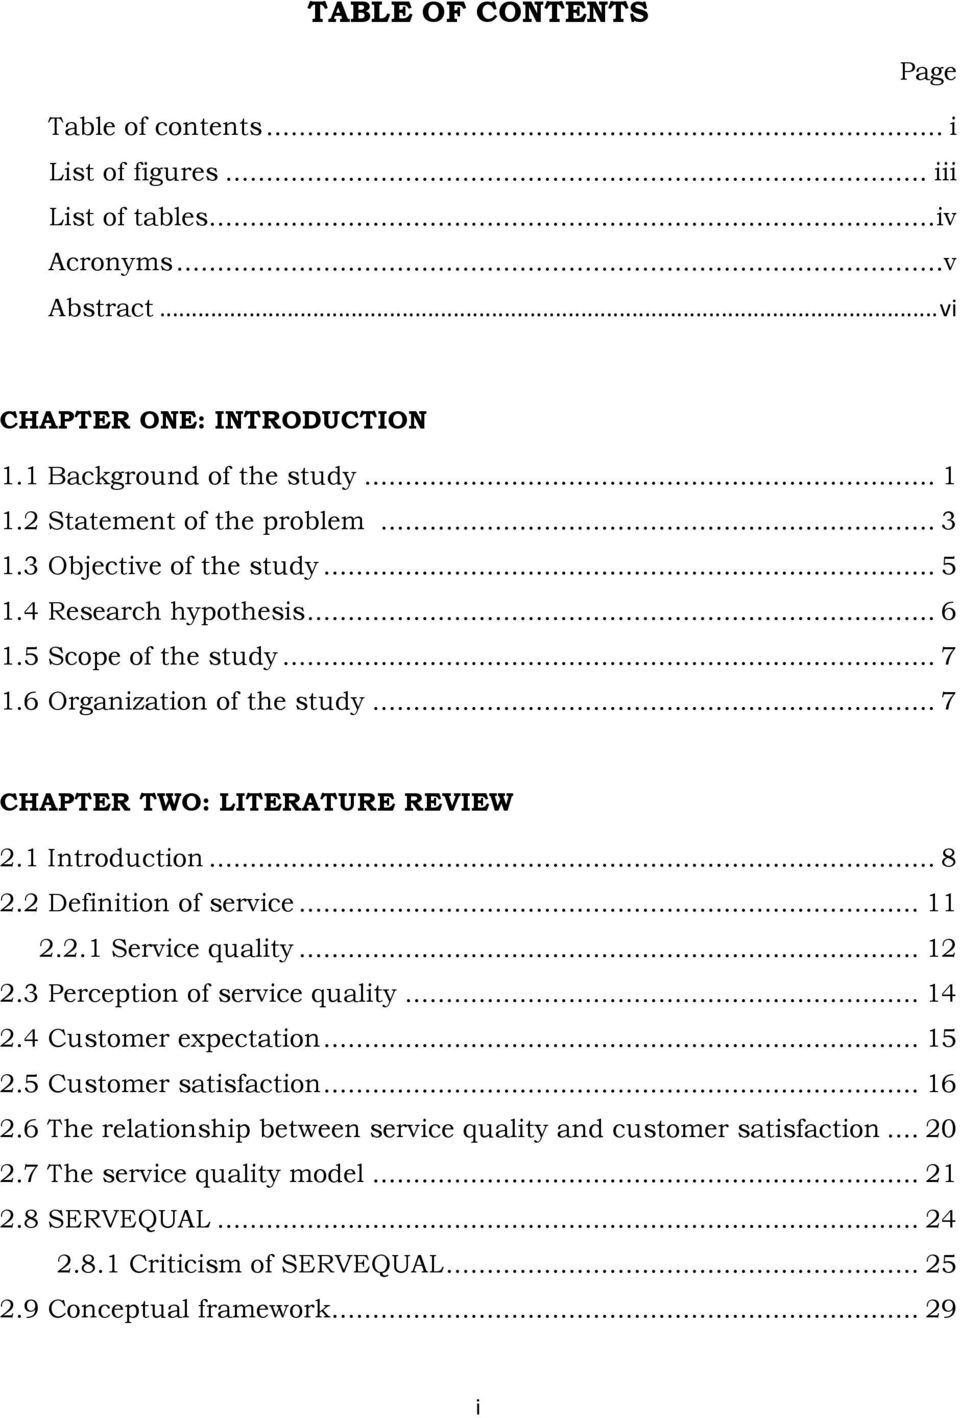 thesis service quality and customer retention